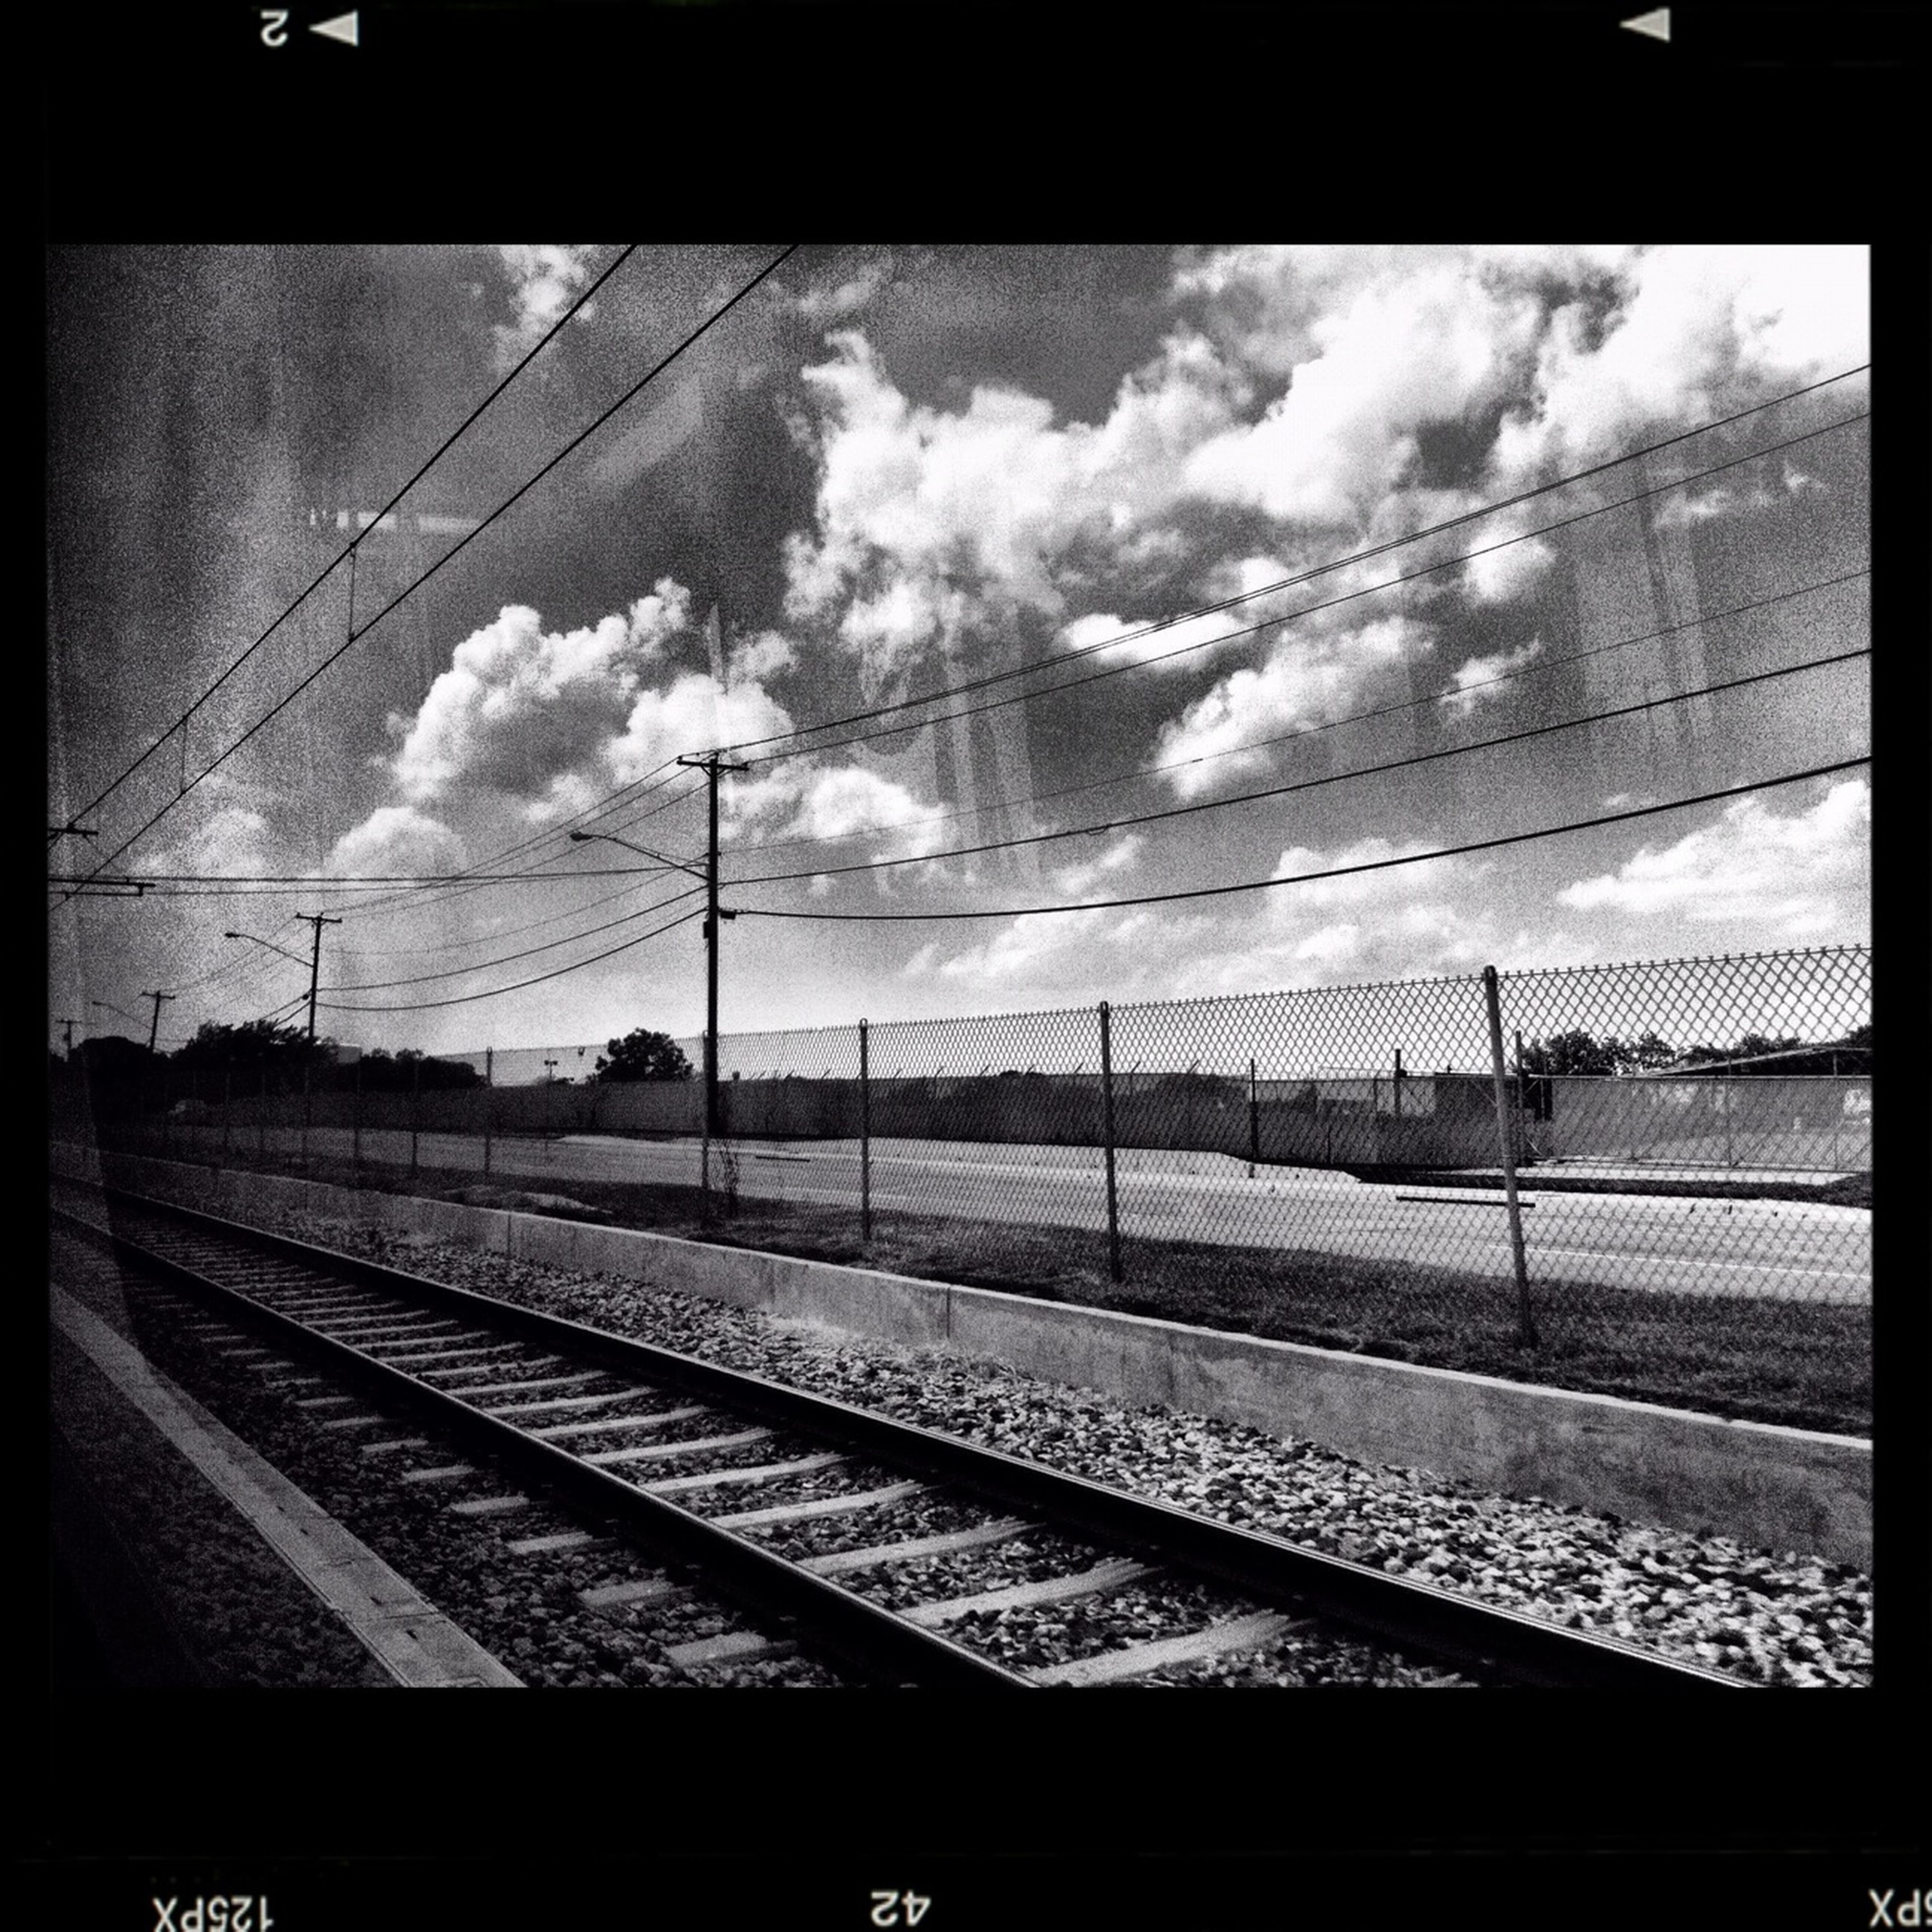 transfer print, power line, railroad track, transportation, sky, electricity pylon, rail transportation, power supply, cloud - sky, auto post production filter, cable, connection, electricity, public transportation, railroad station platform, railroad station, cloudy, power cable, cloud, train - vehicle